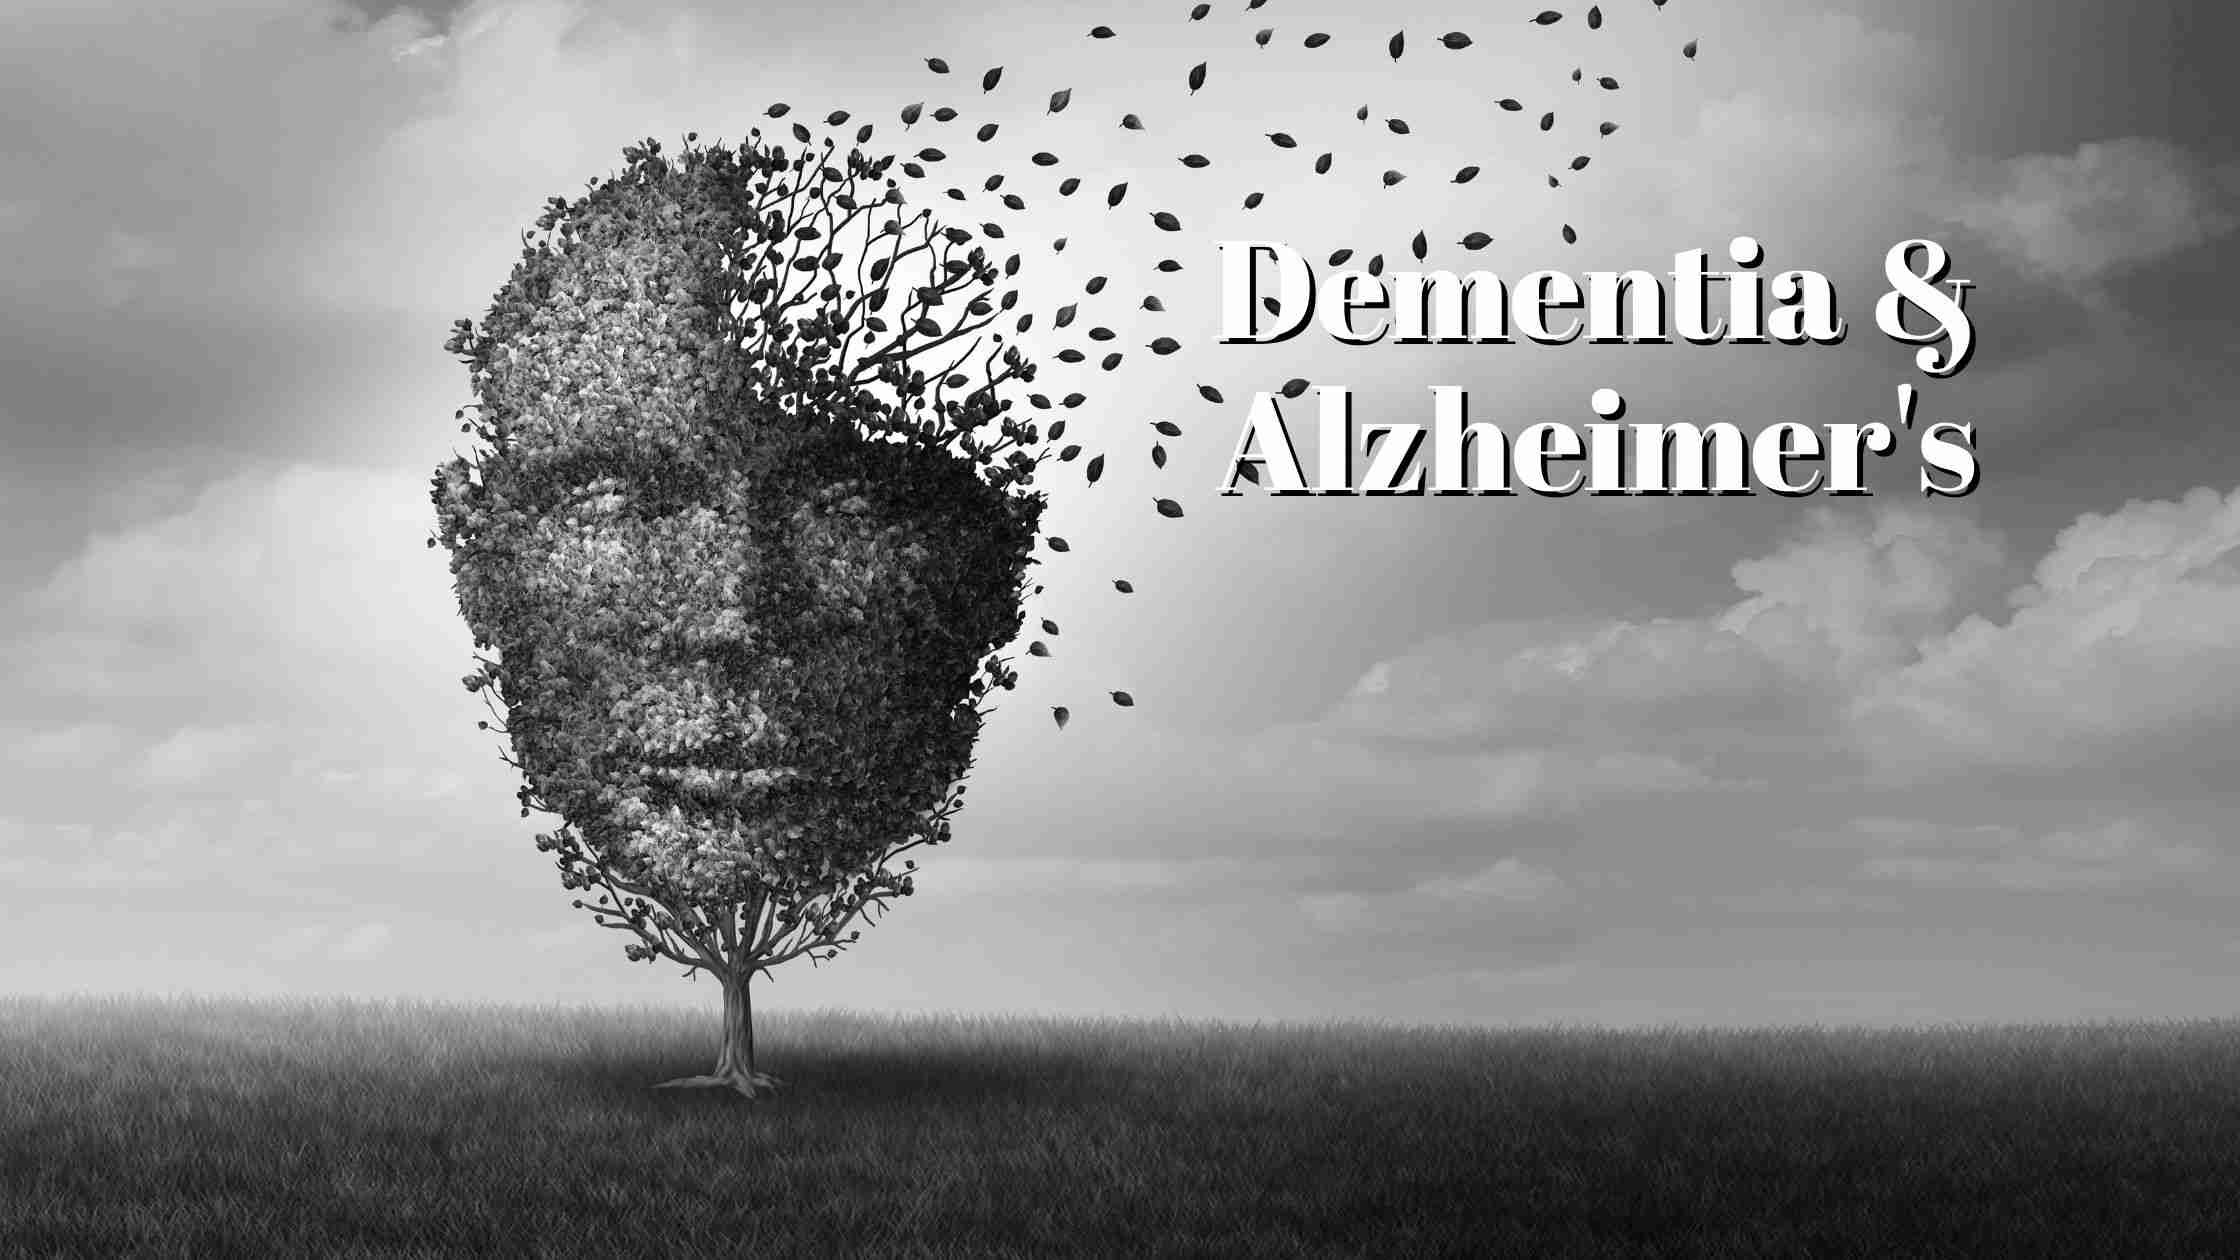 CBD for dementia and alzheimers